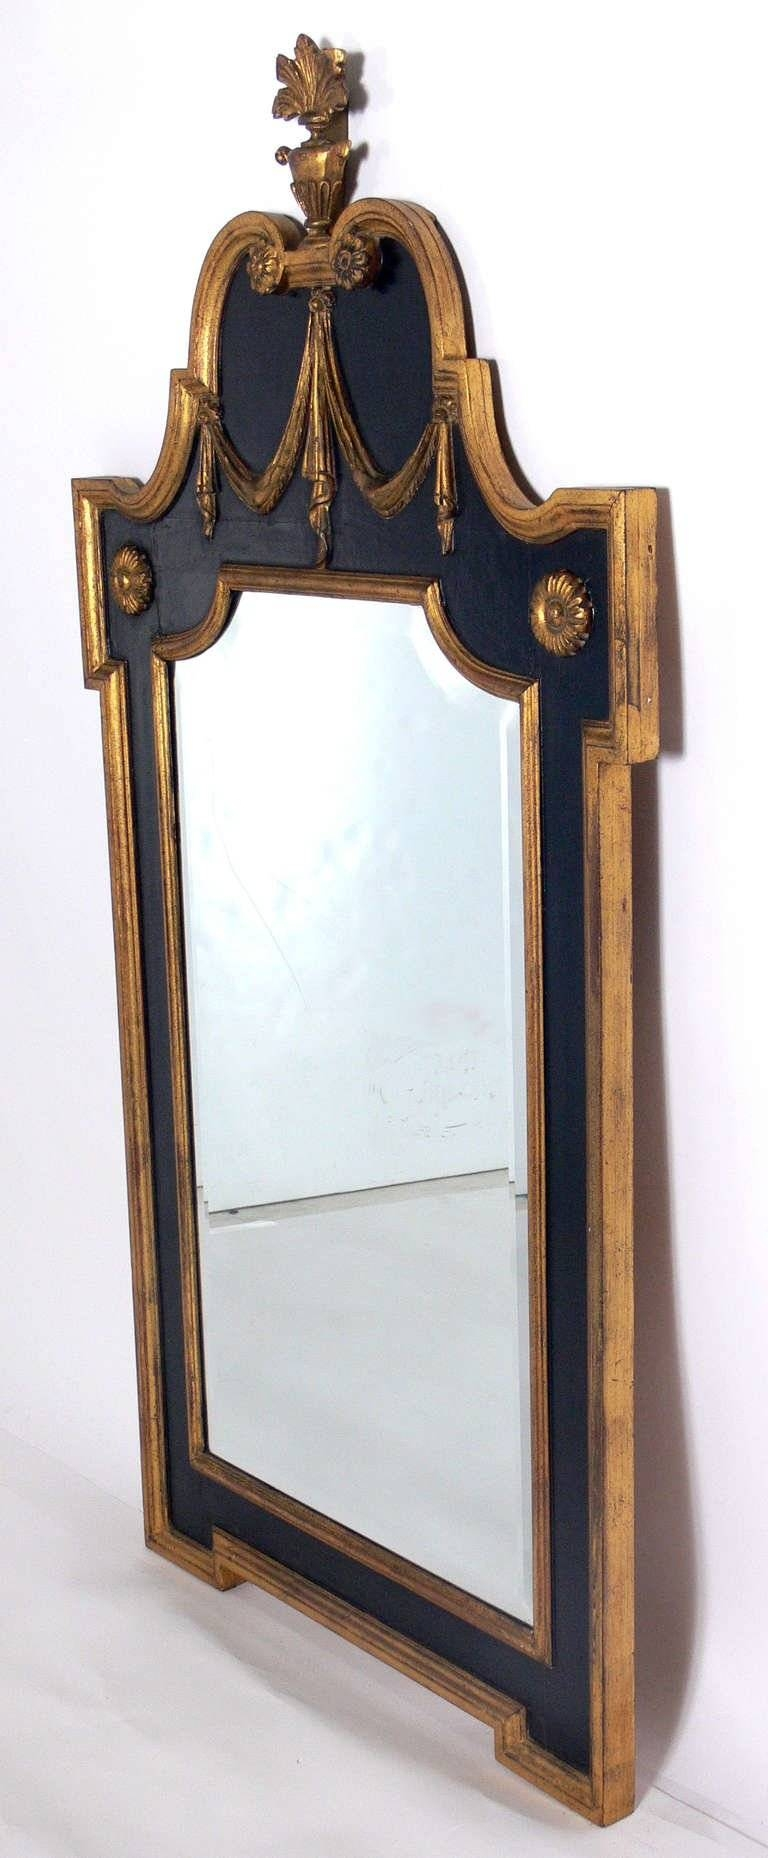 Neoclassical Gold And Black Mirror For Sale At 1Stdibs Within Antique Black Mirrors (View 13 of 15)